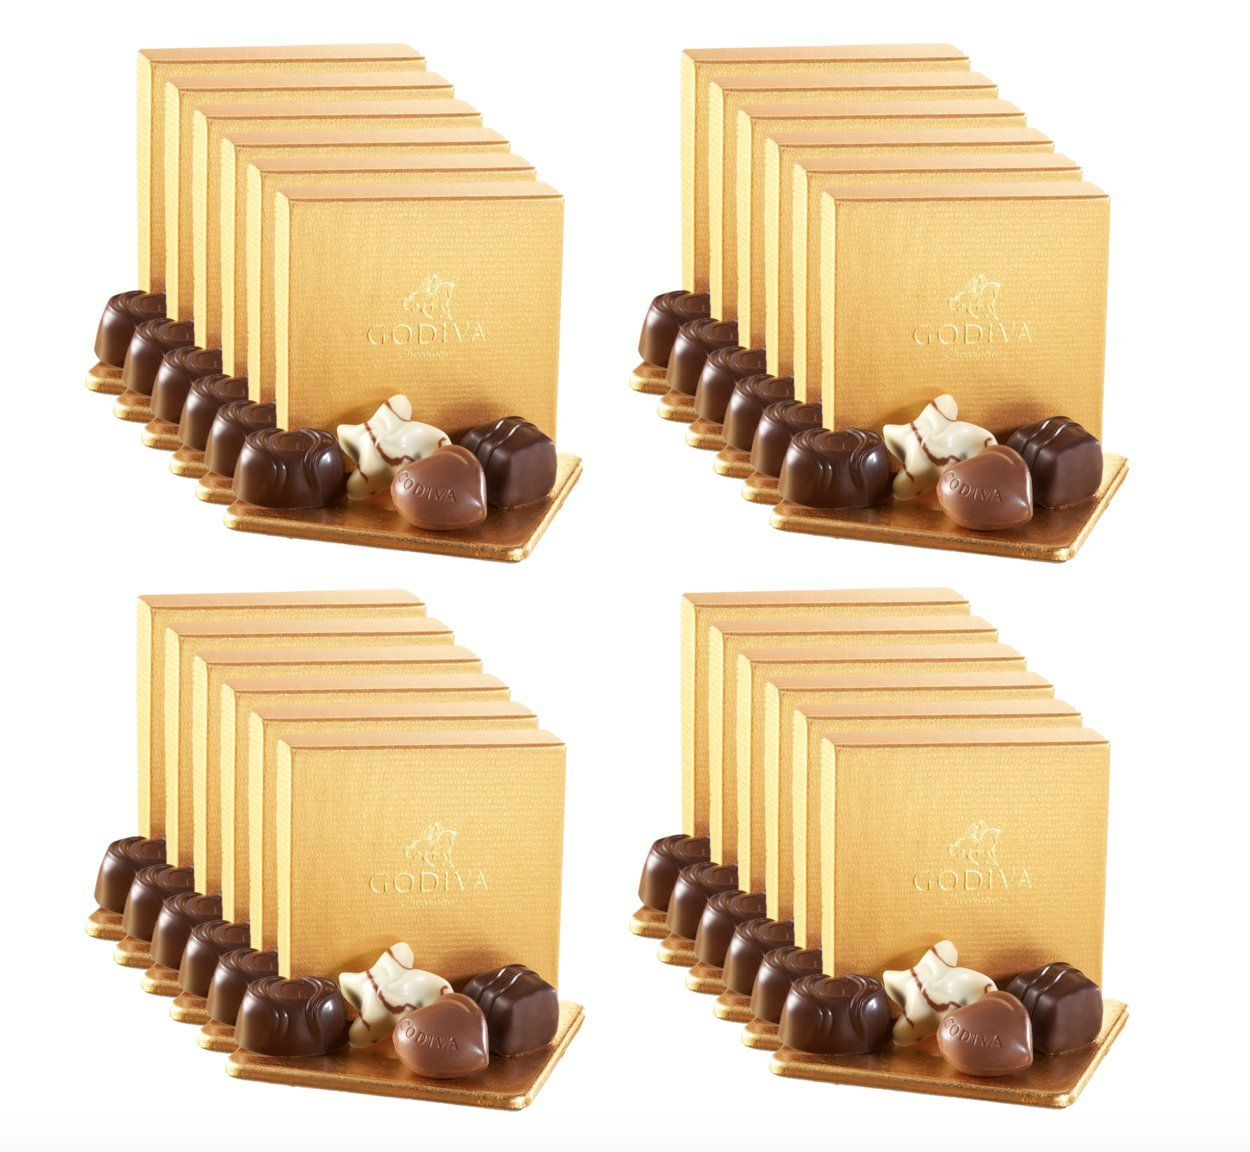 Godiva Chocolatier 24 Individually Packaged, 4-Piece Belgian Chocolate Gold Ballotins, Perfect for Bridal Showers - Parties - Wedding Favors by GODIVA Chocolatier (Image #2)